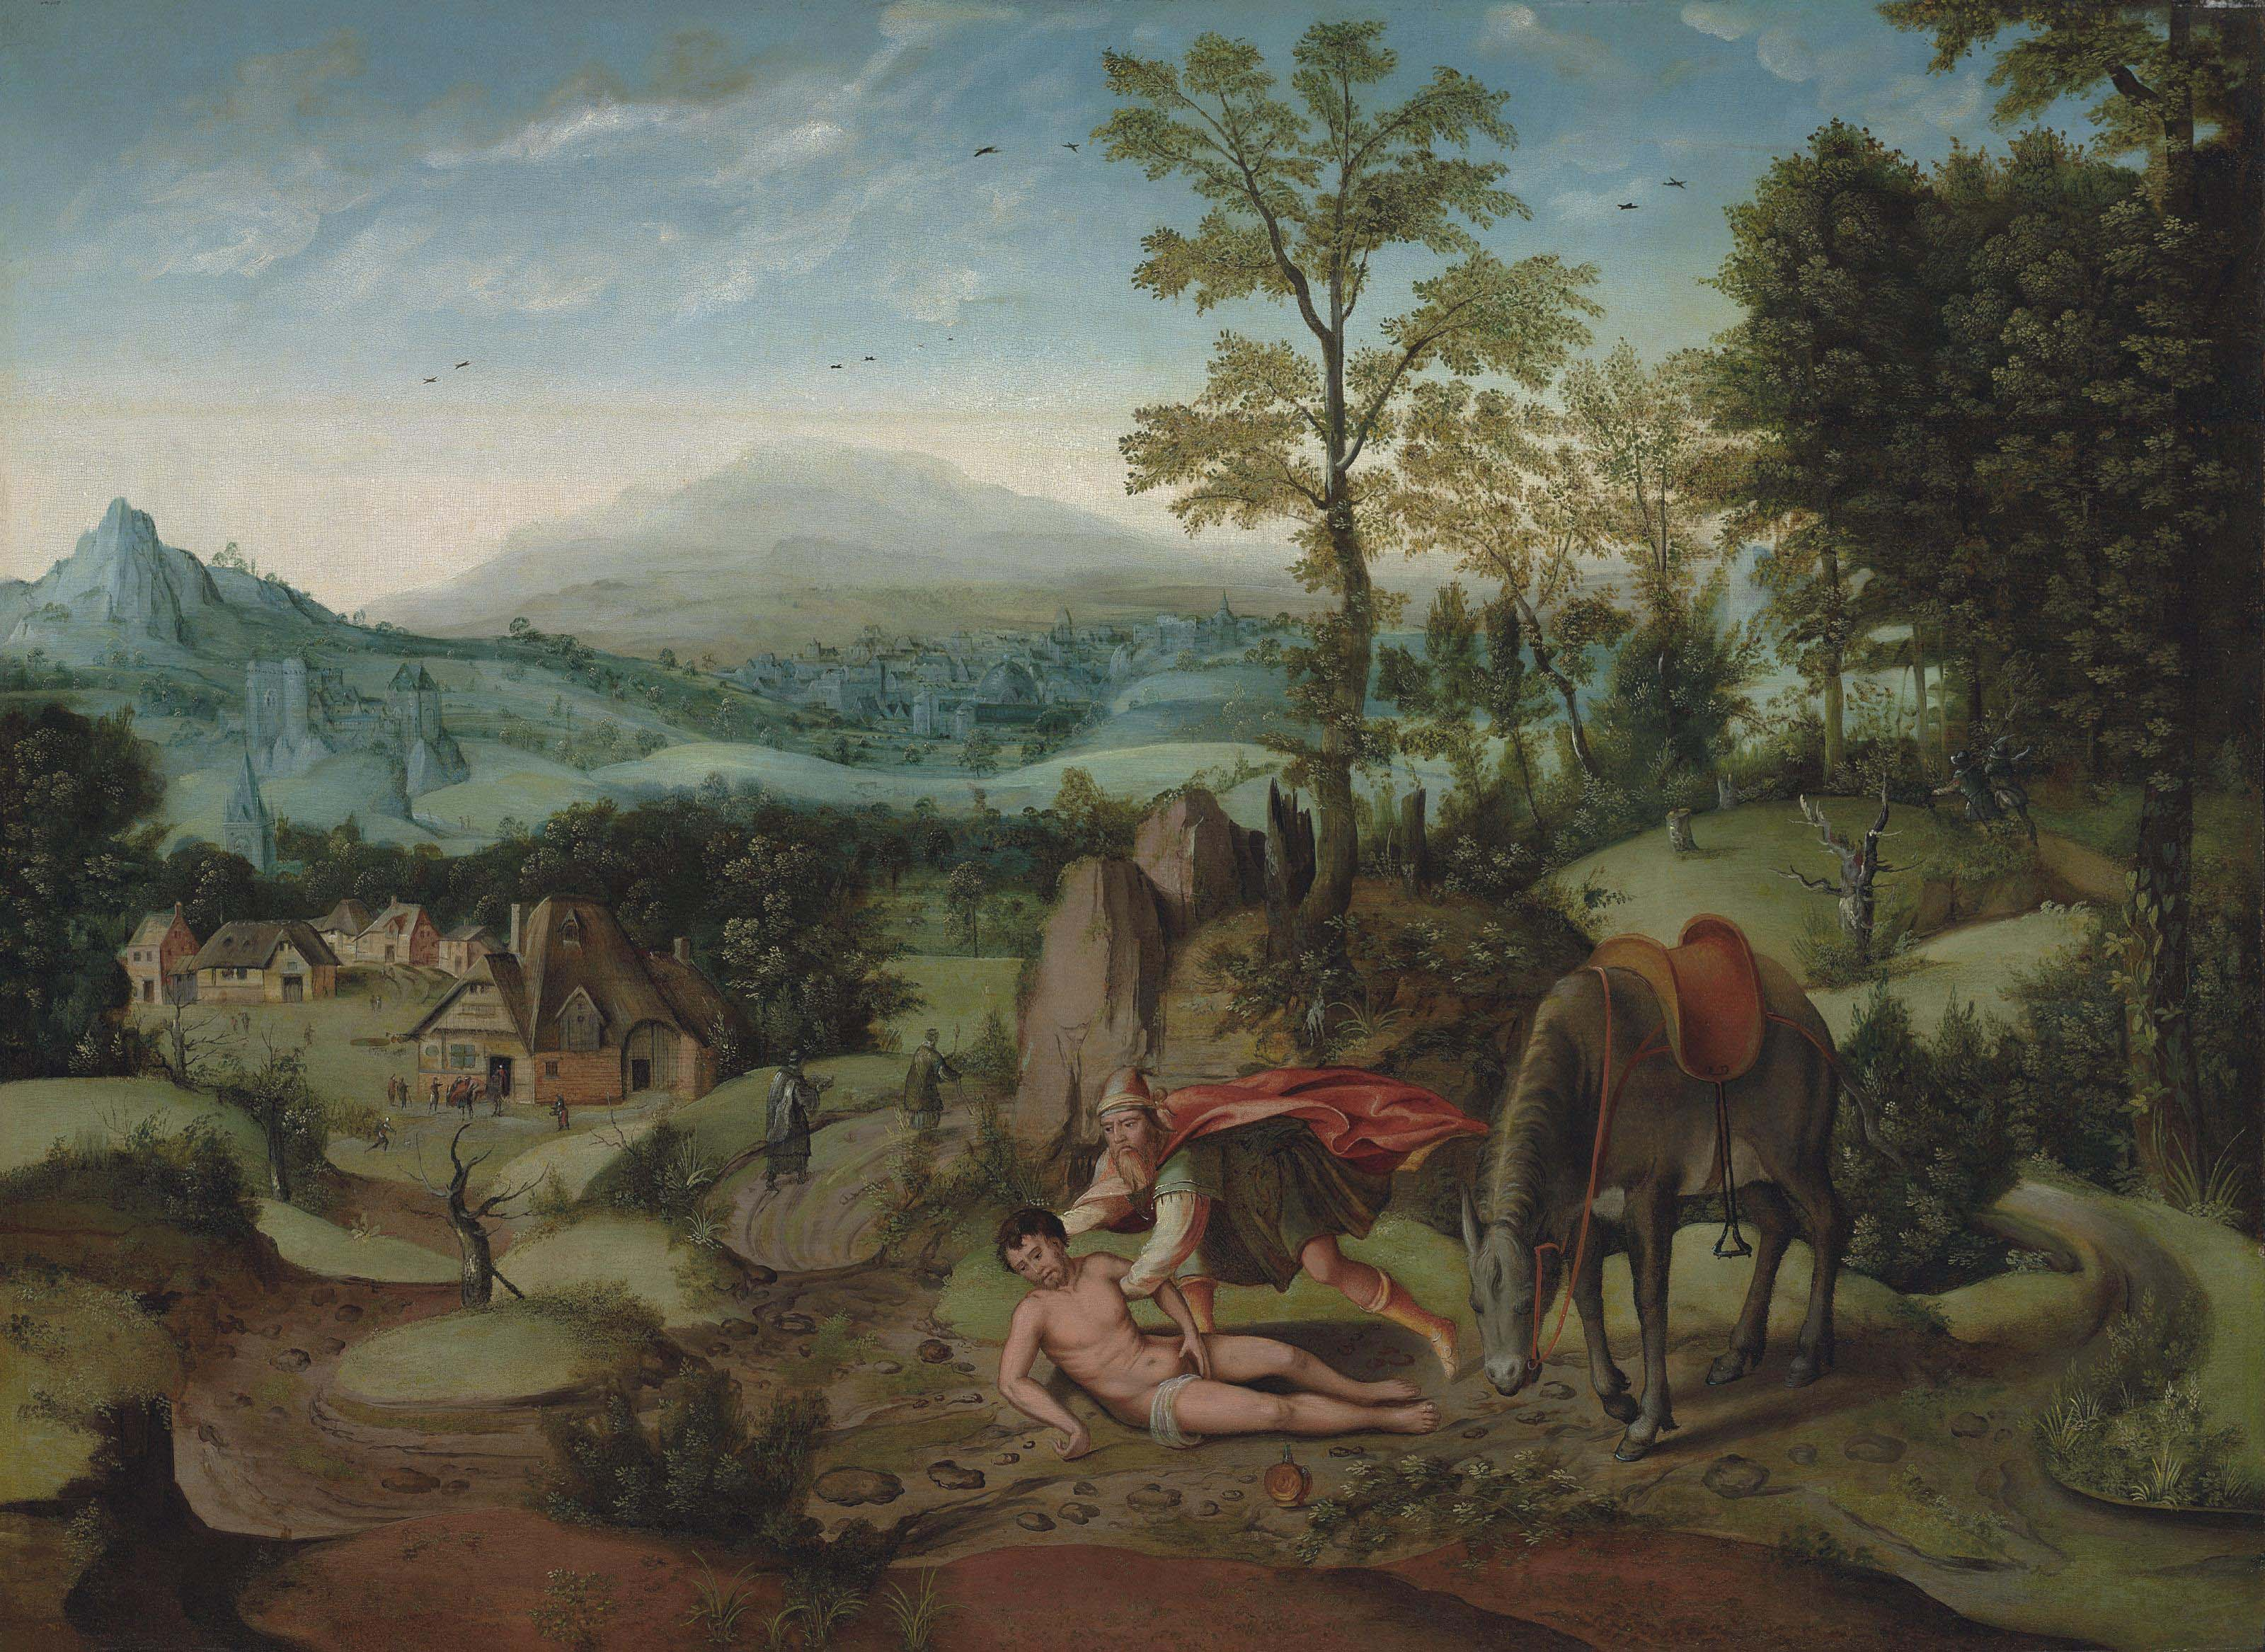 An extensive mountainous landscape with the Good Samaritan